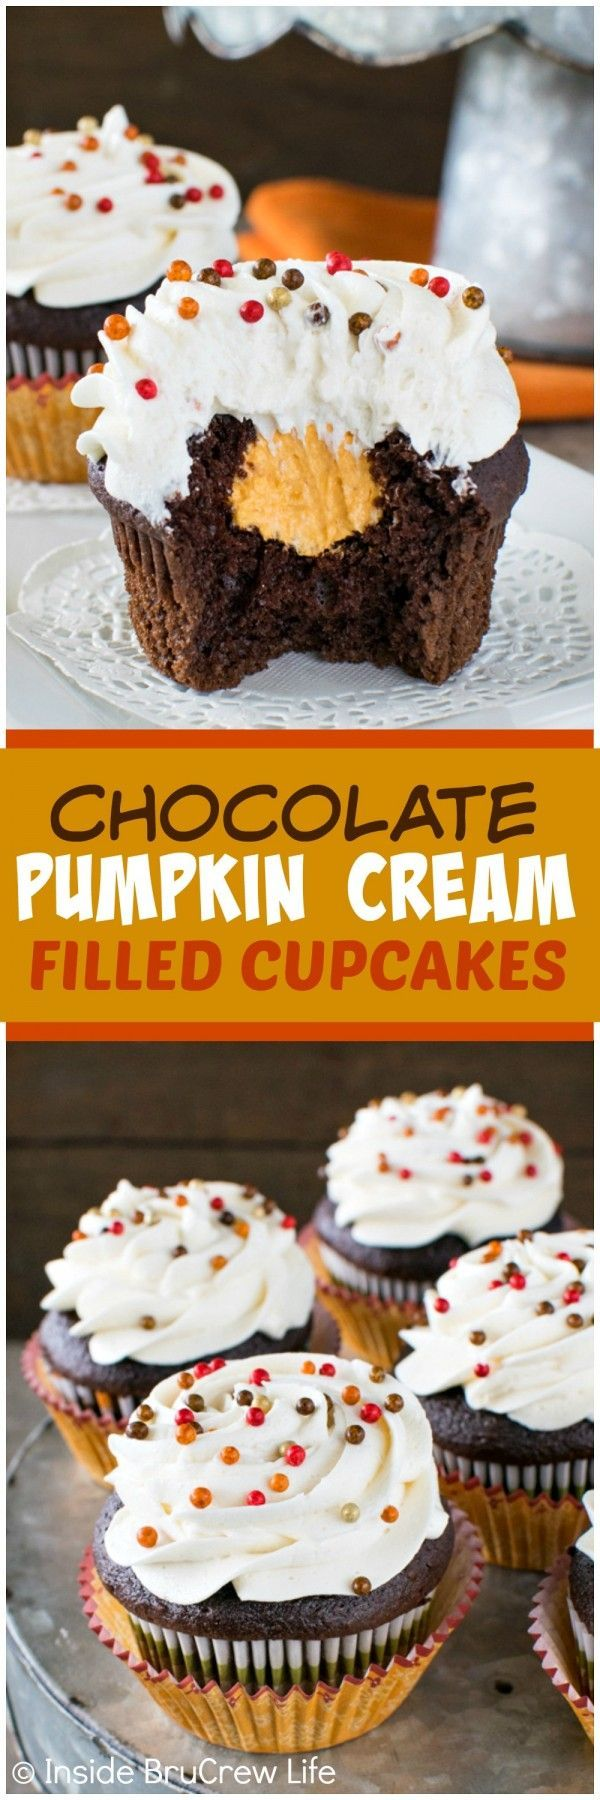 Chocolate Pumpkin Cream Filled Cupcakes - a hidden pumpkin cream center makes these chocolate cupcakes a fun recipe to share at fall parties